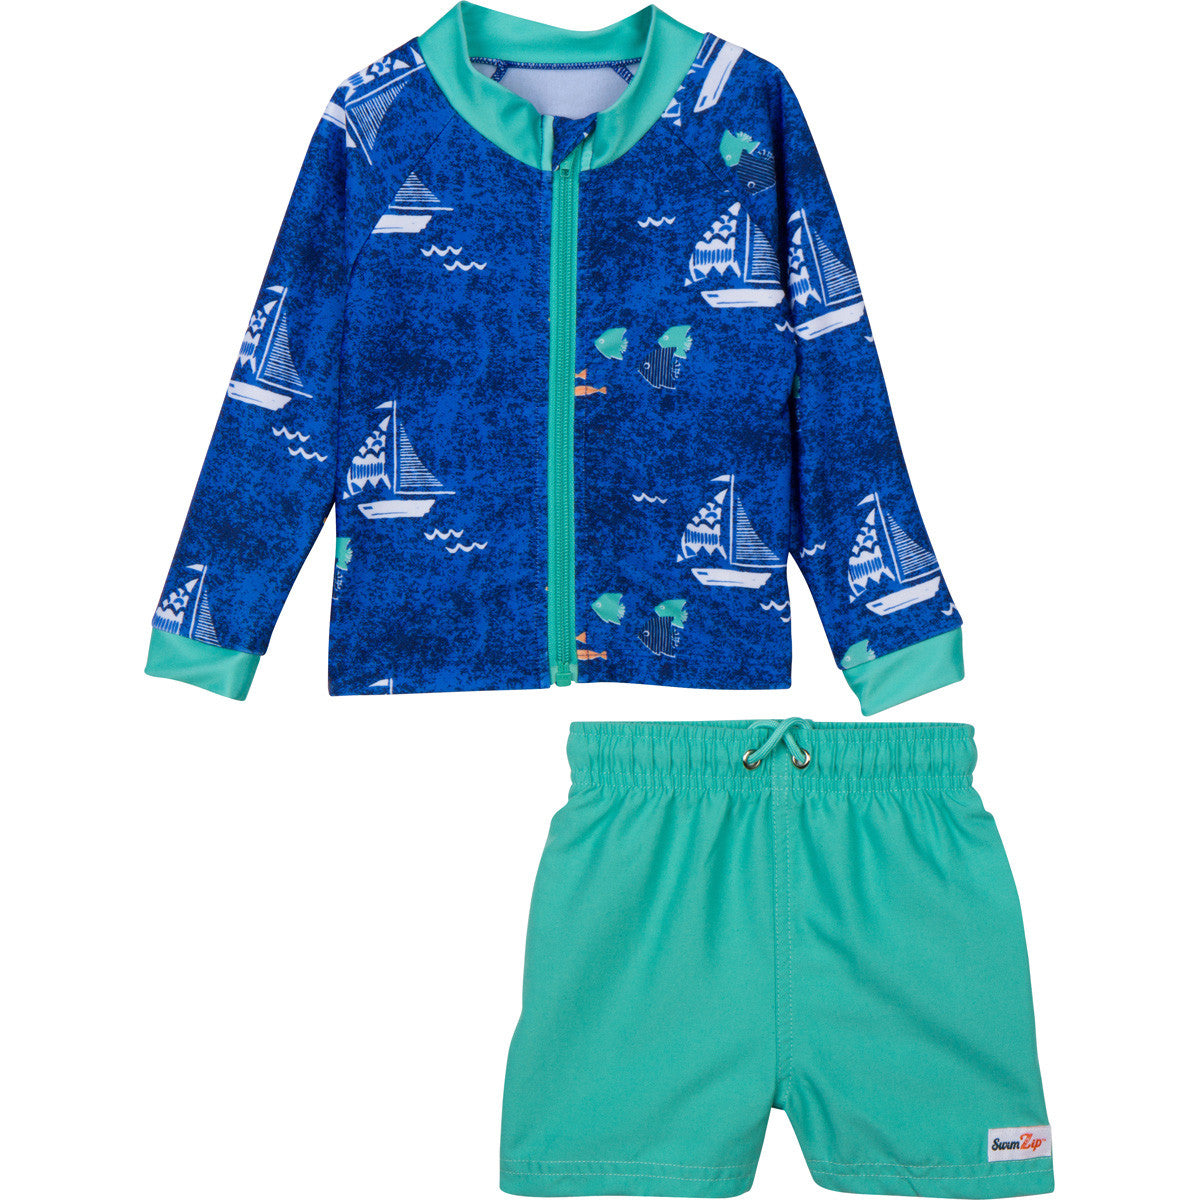 baby by uv swimsuit set long sleeve swimzip